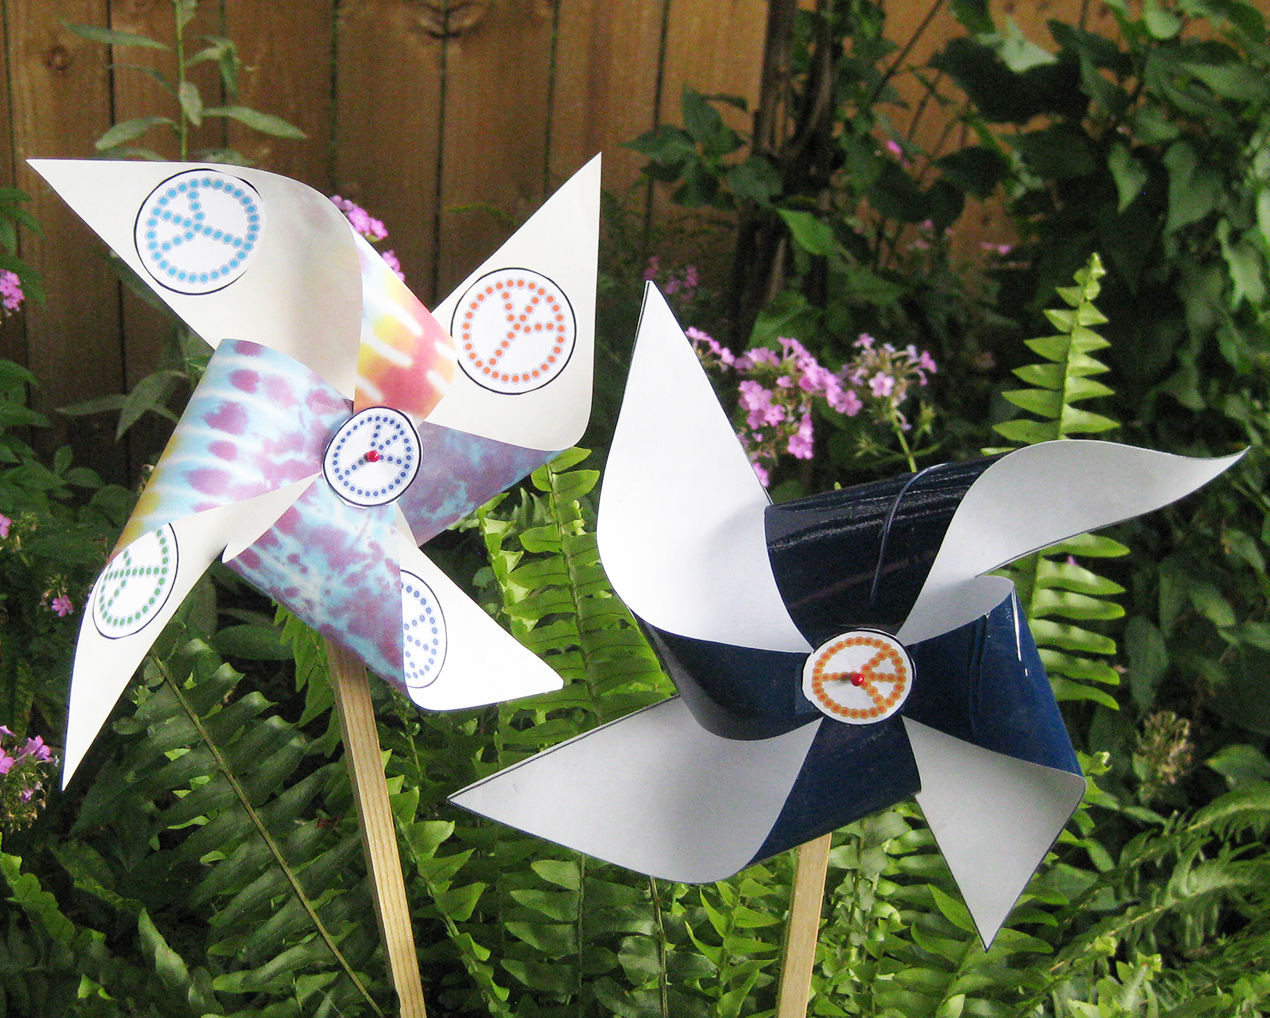 Des Plaines Church To Plant Pinwheels For Peace | Journal & Topics ...